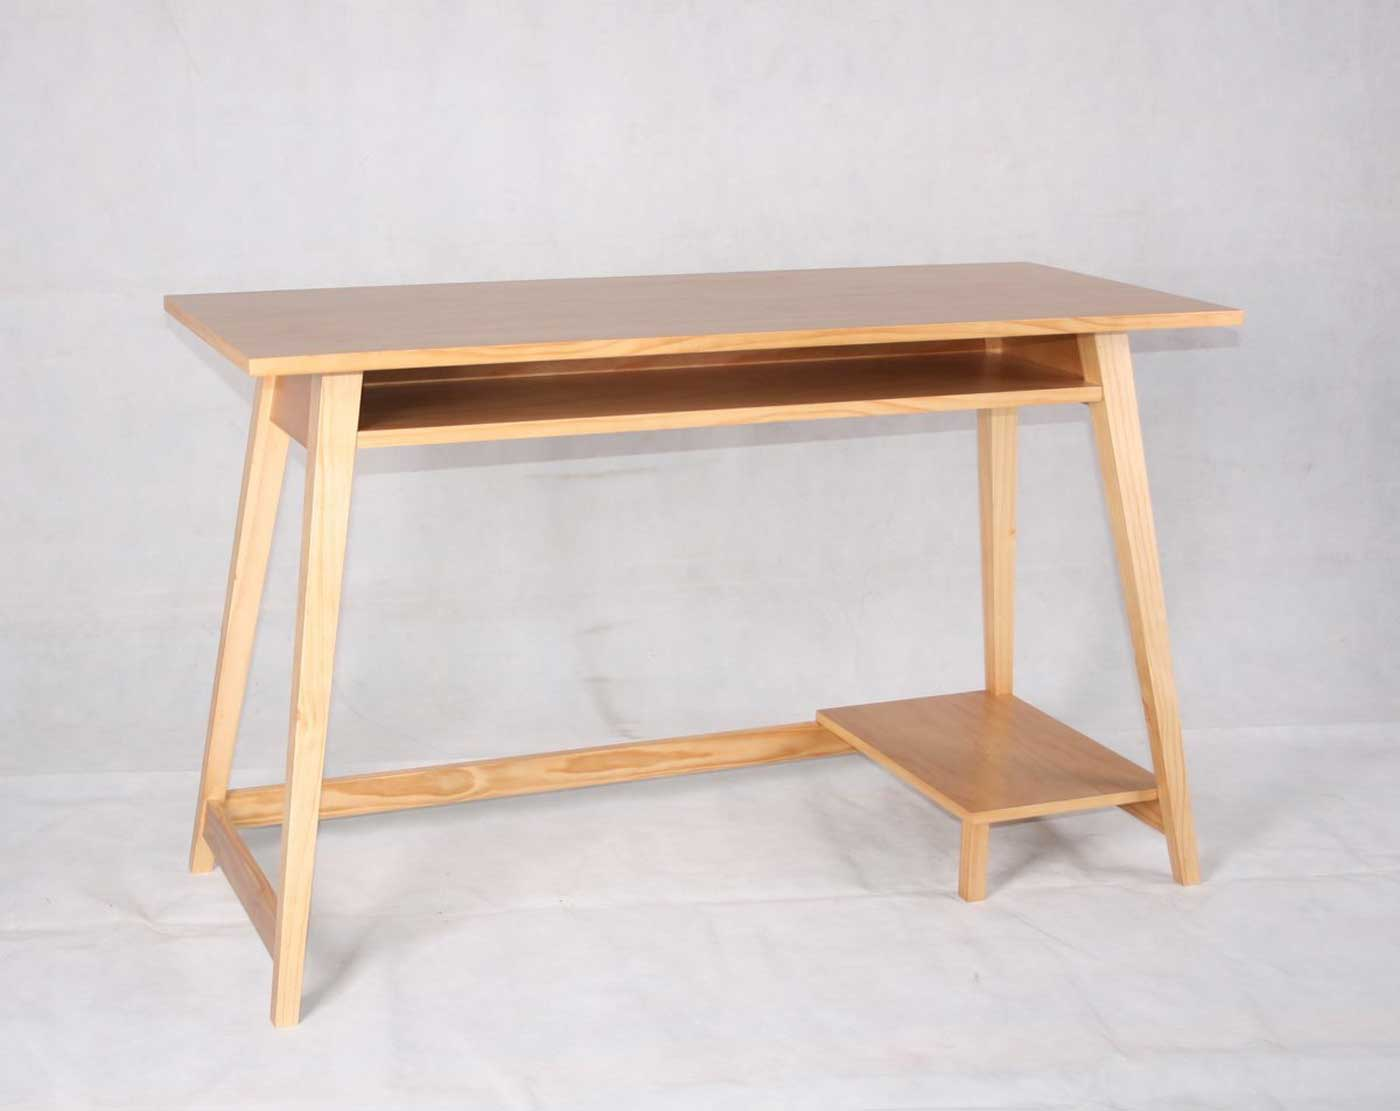 Build Simple Wooden Desk | Beginner Woodworking Project